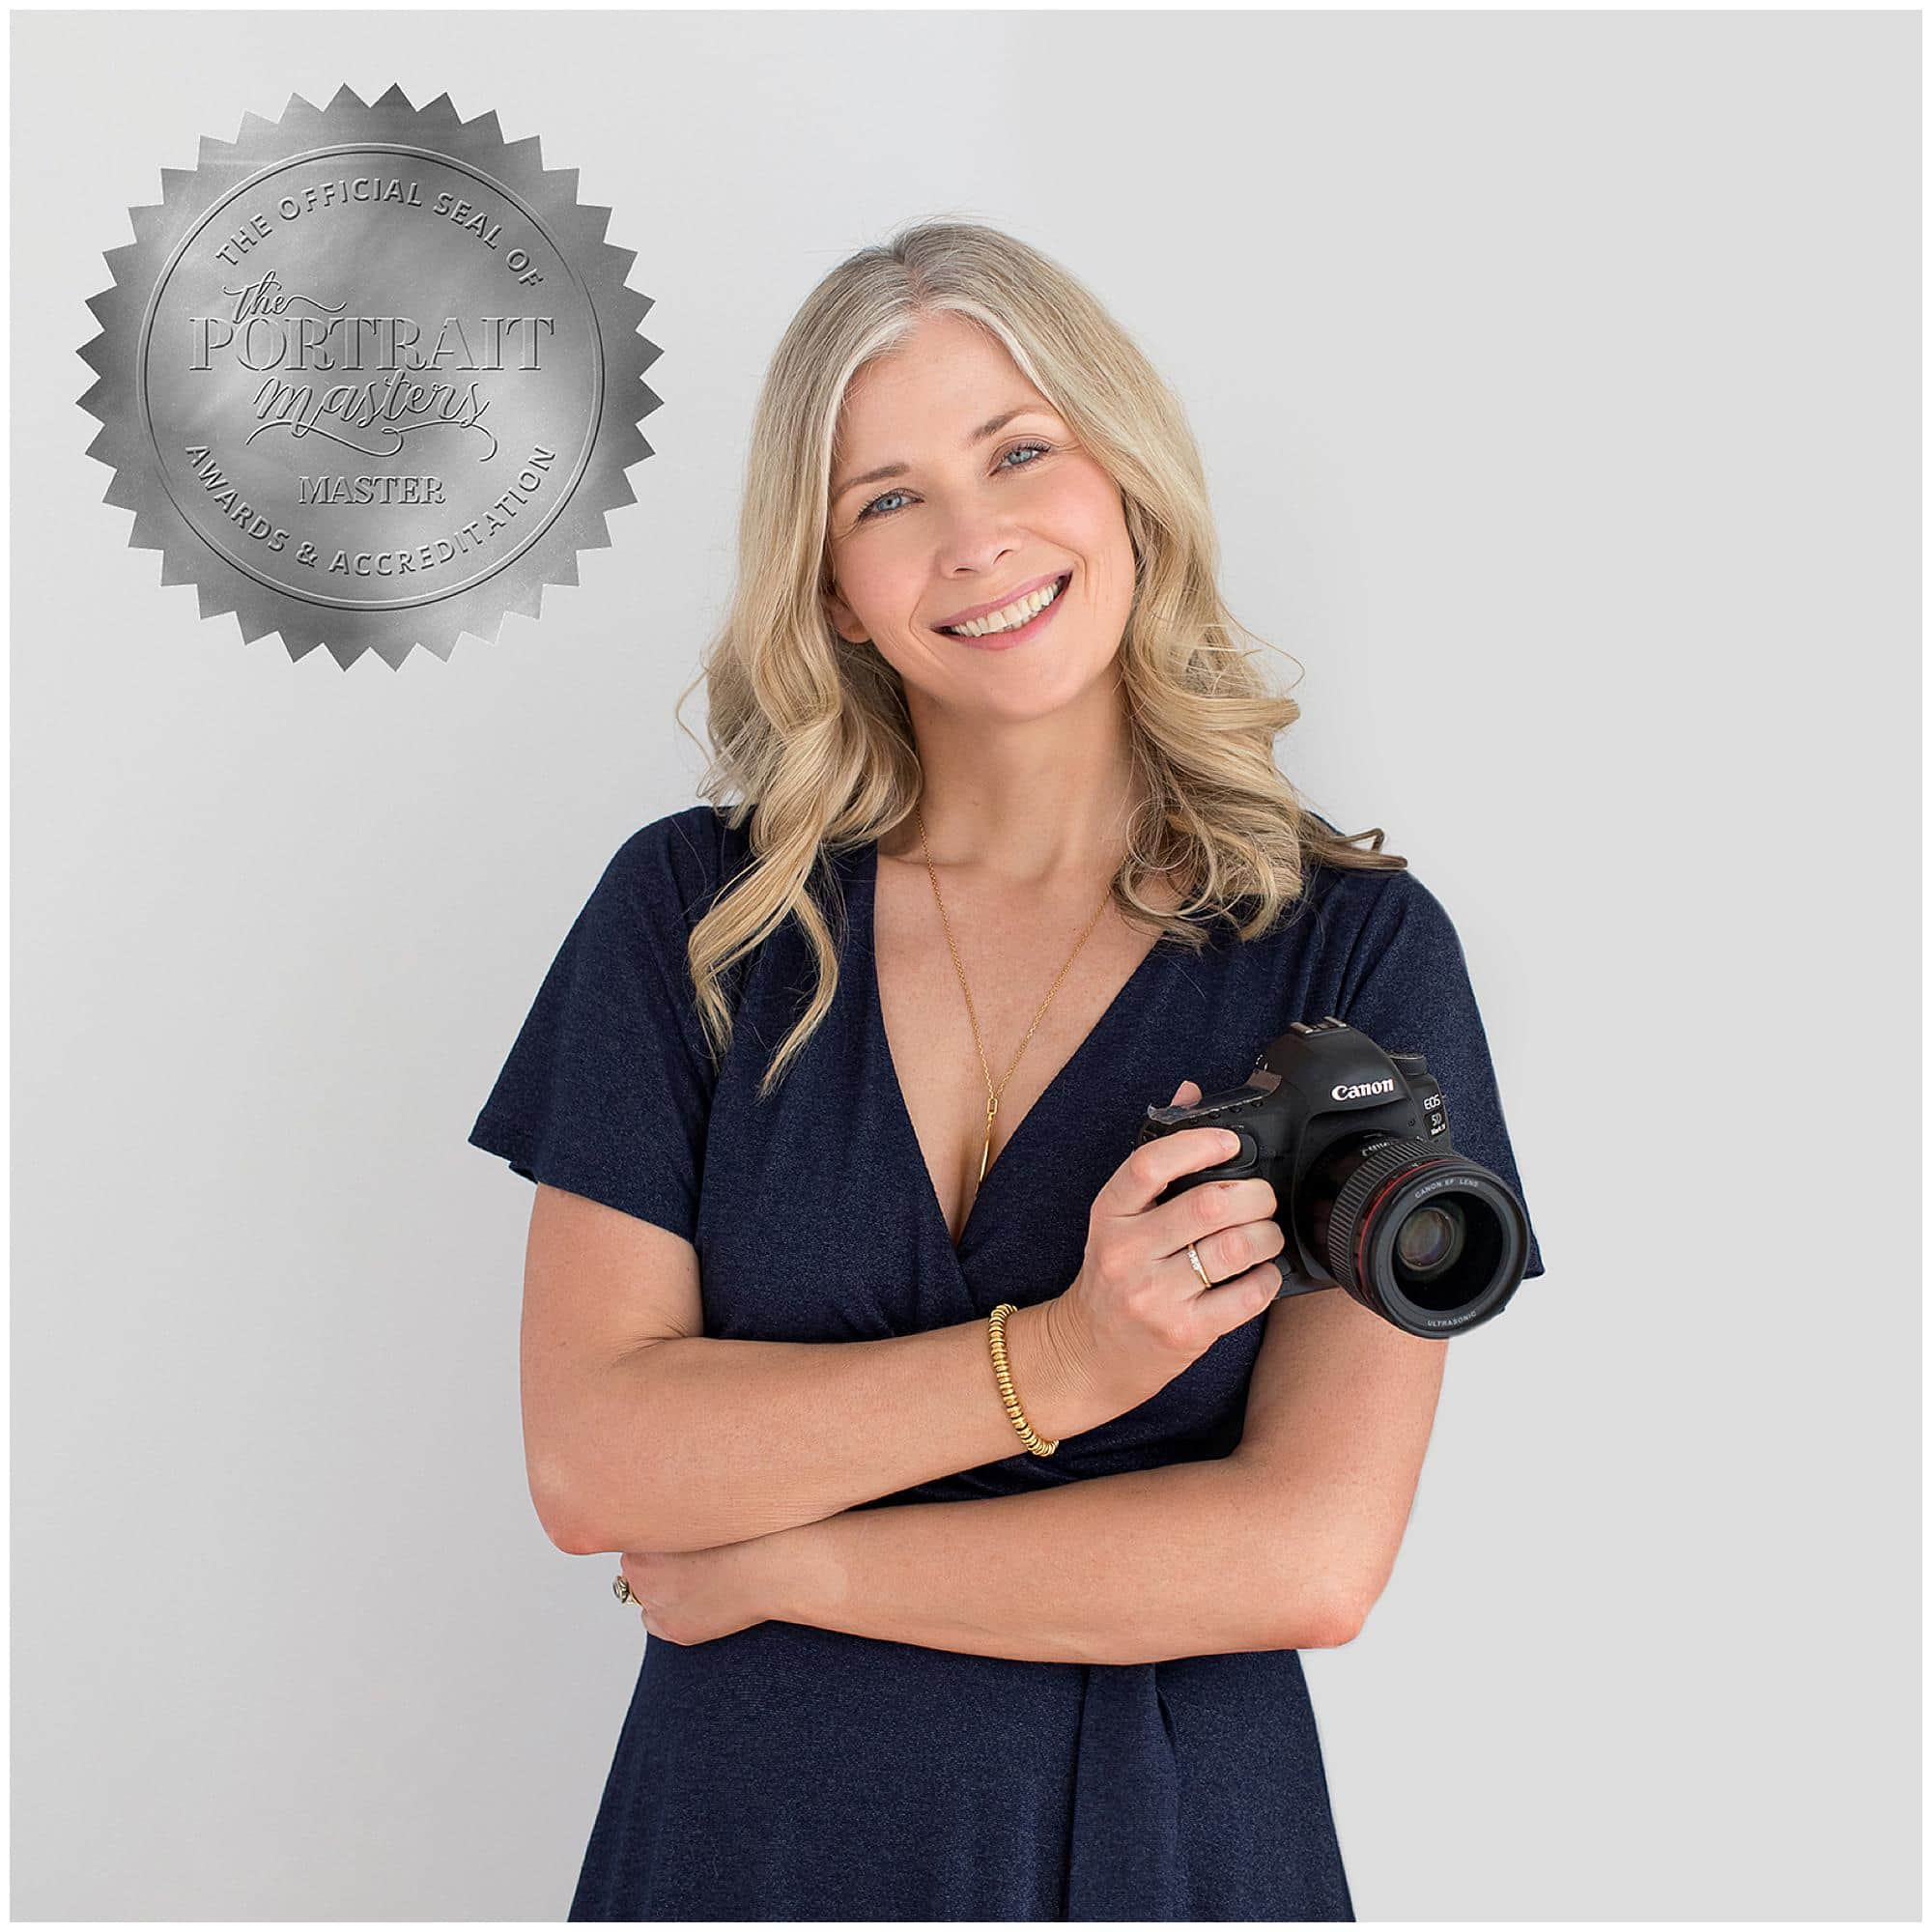 Female Photographer with long hair and a navy dress holds a camera and smiles